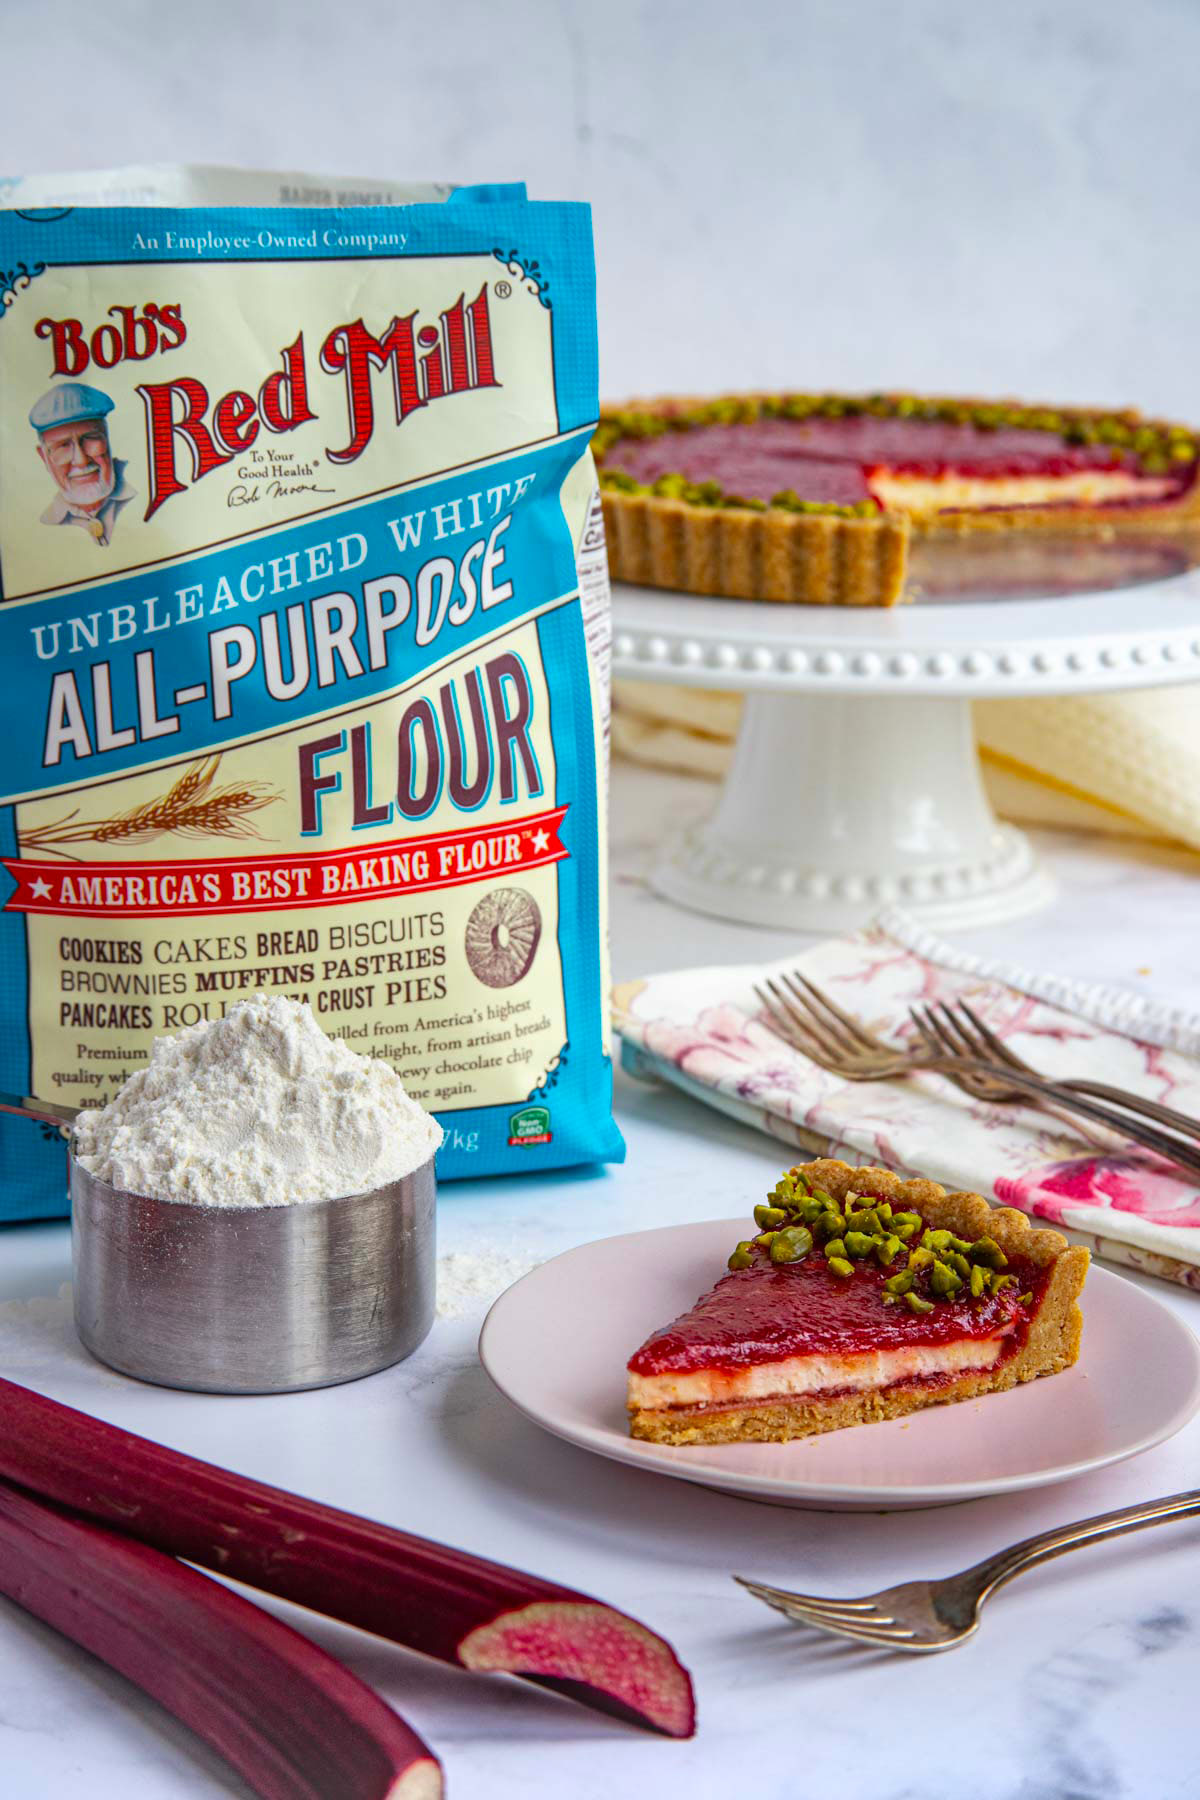 A slice of the rhubarb cream tart on a pink dessert plate next to a bag of Bob's Red Mill AP Flour and a measuring cup with flour.